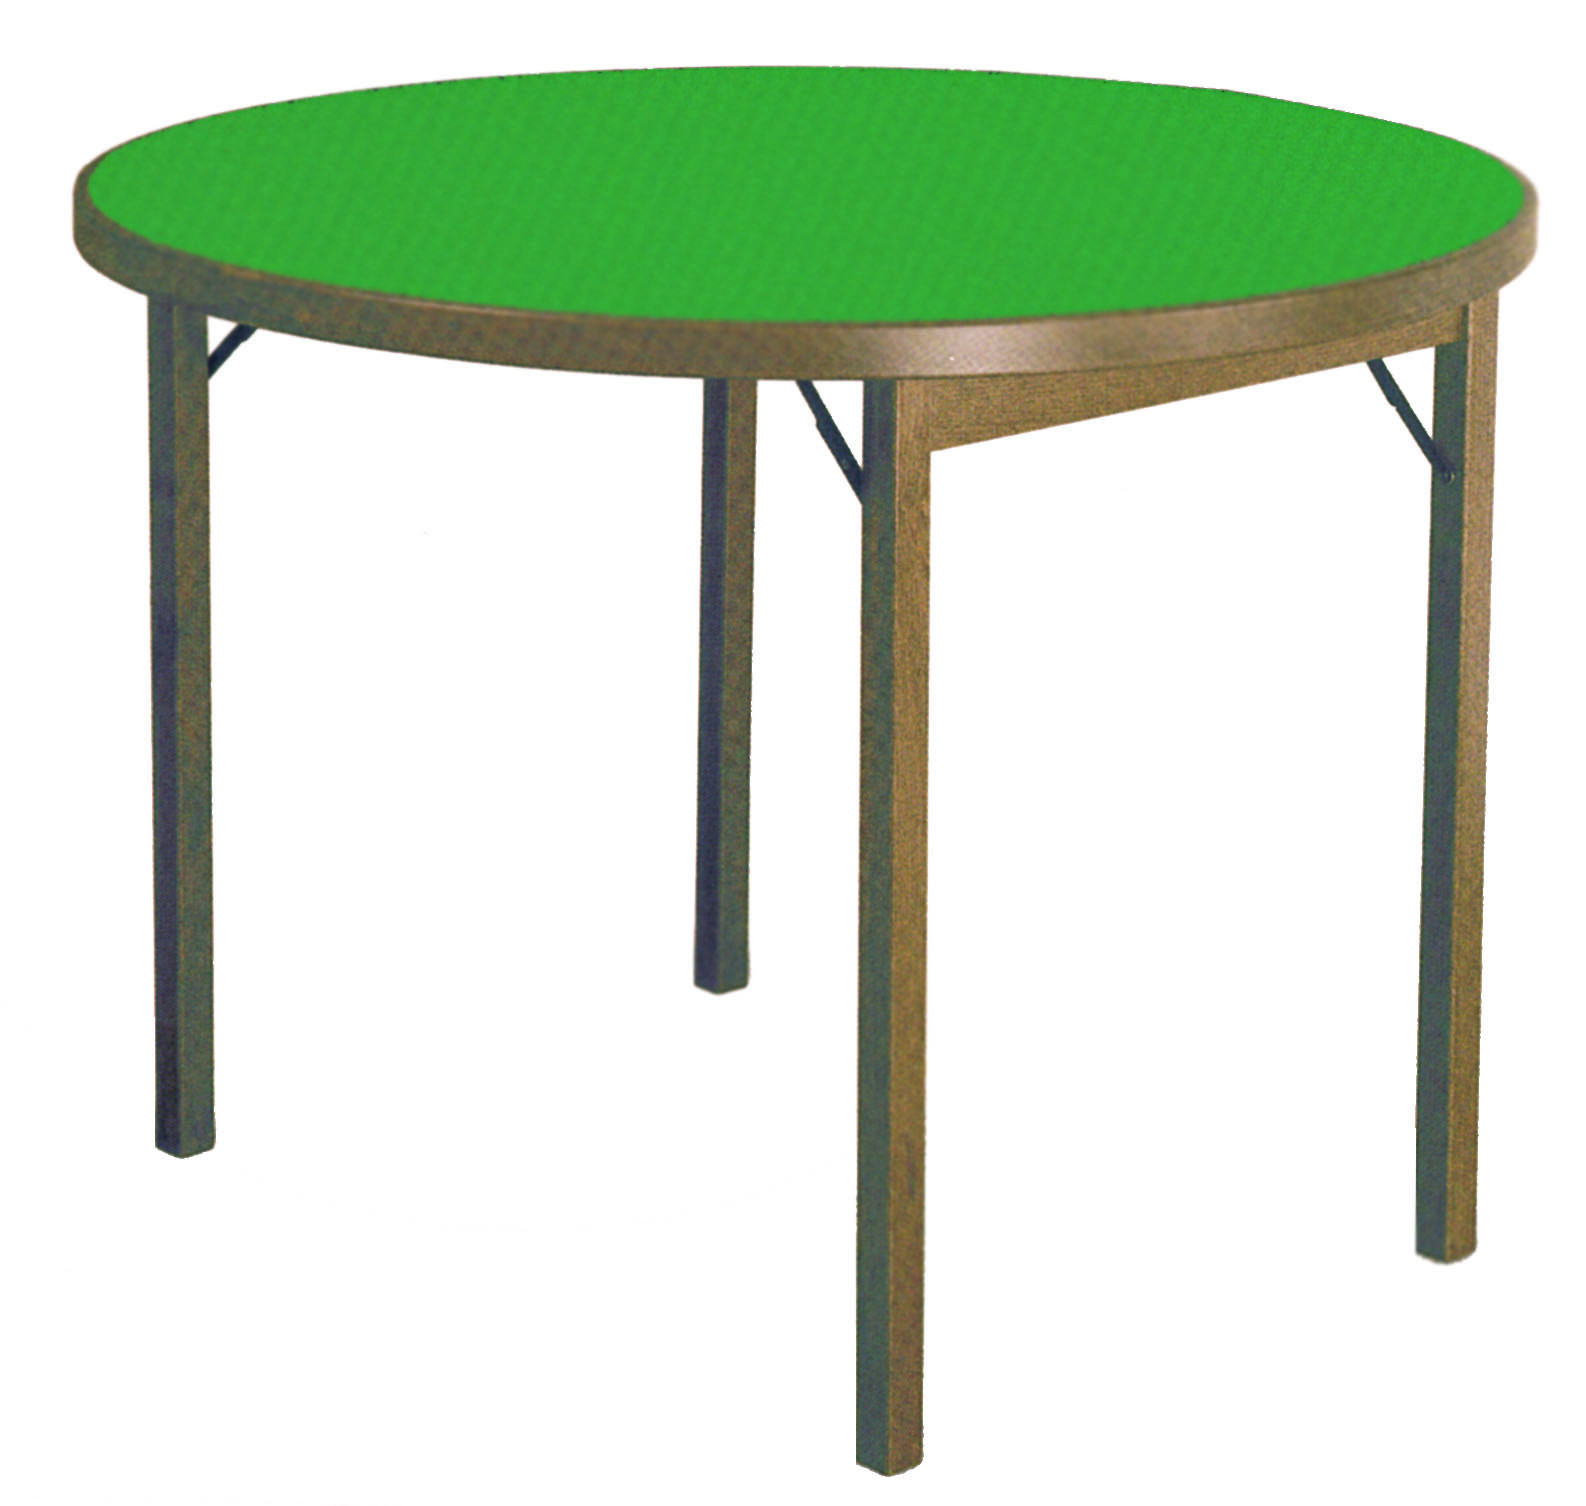 Card table moon round ø 100 wooden tables df 712 0